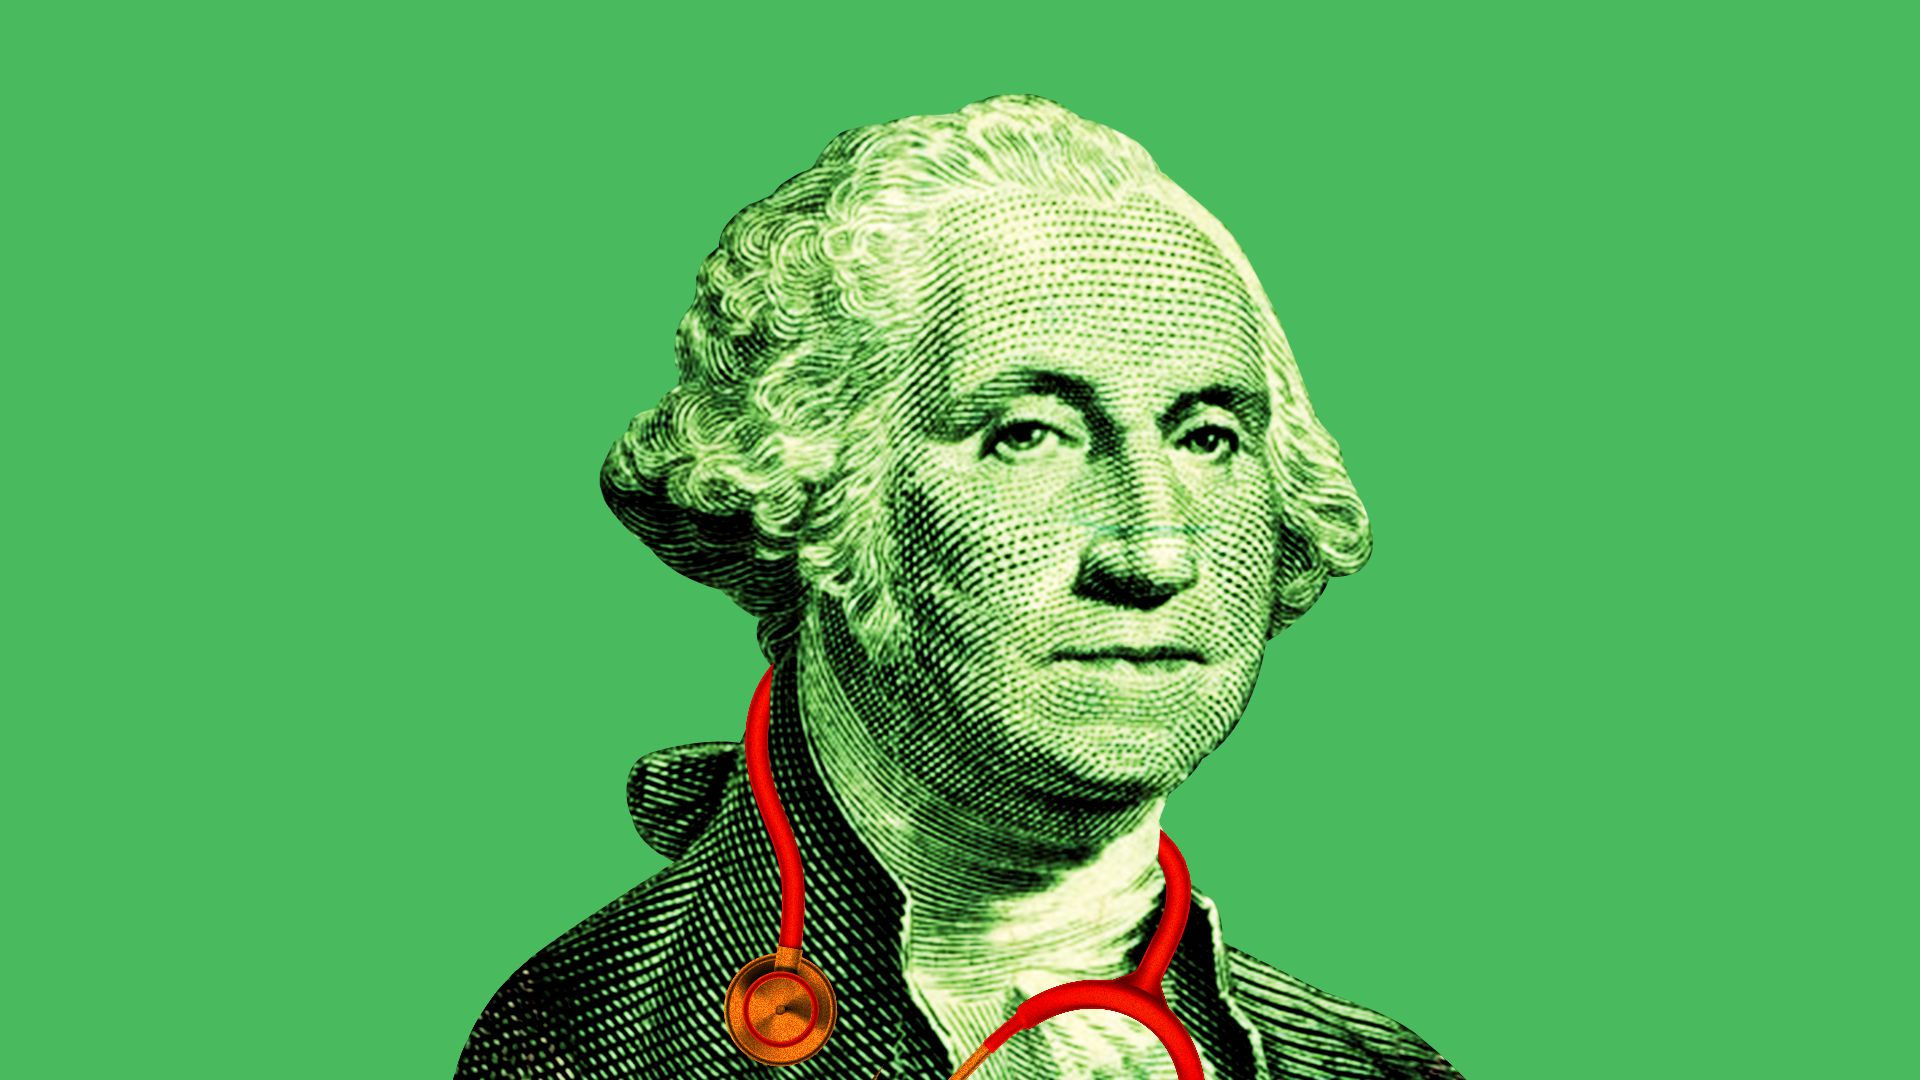 Illustration of George Washington with a stethoscope around his neck.